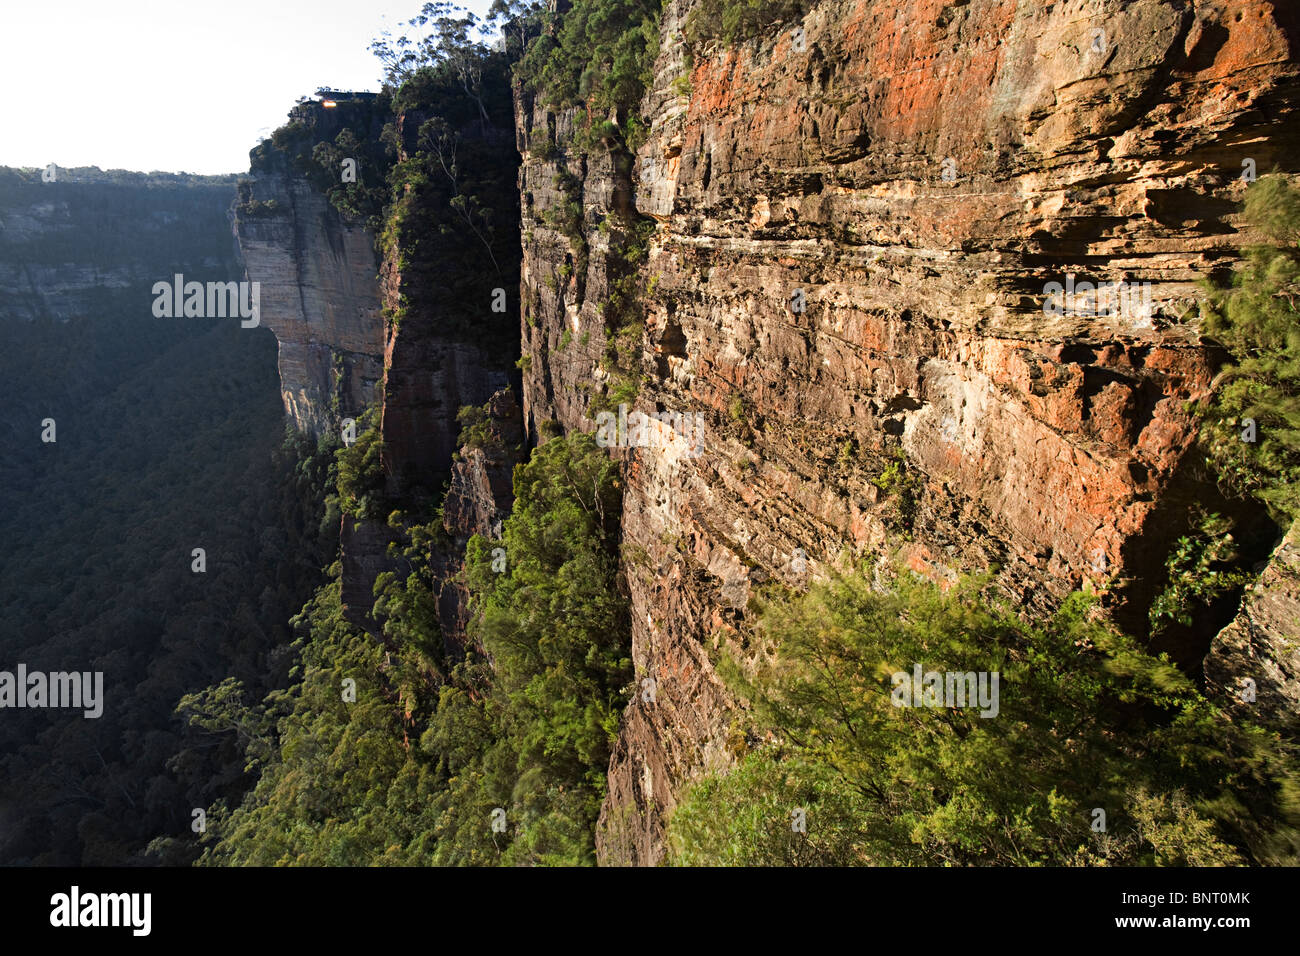 Large orange and grey cliff above jungle. - Stock Image